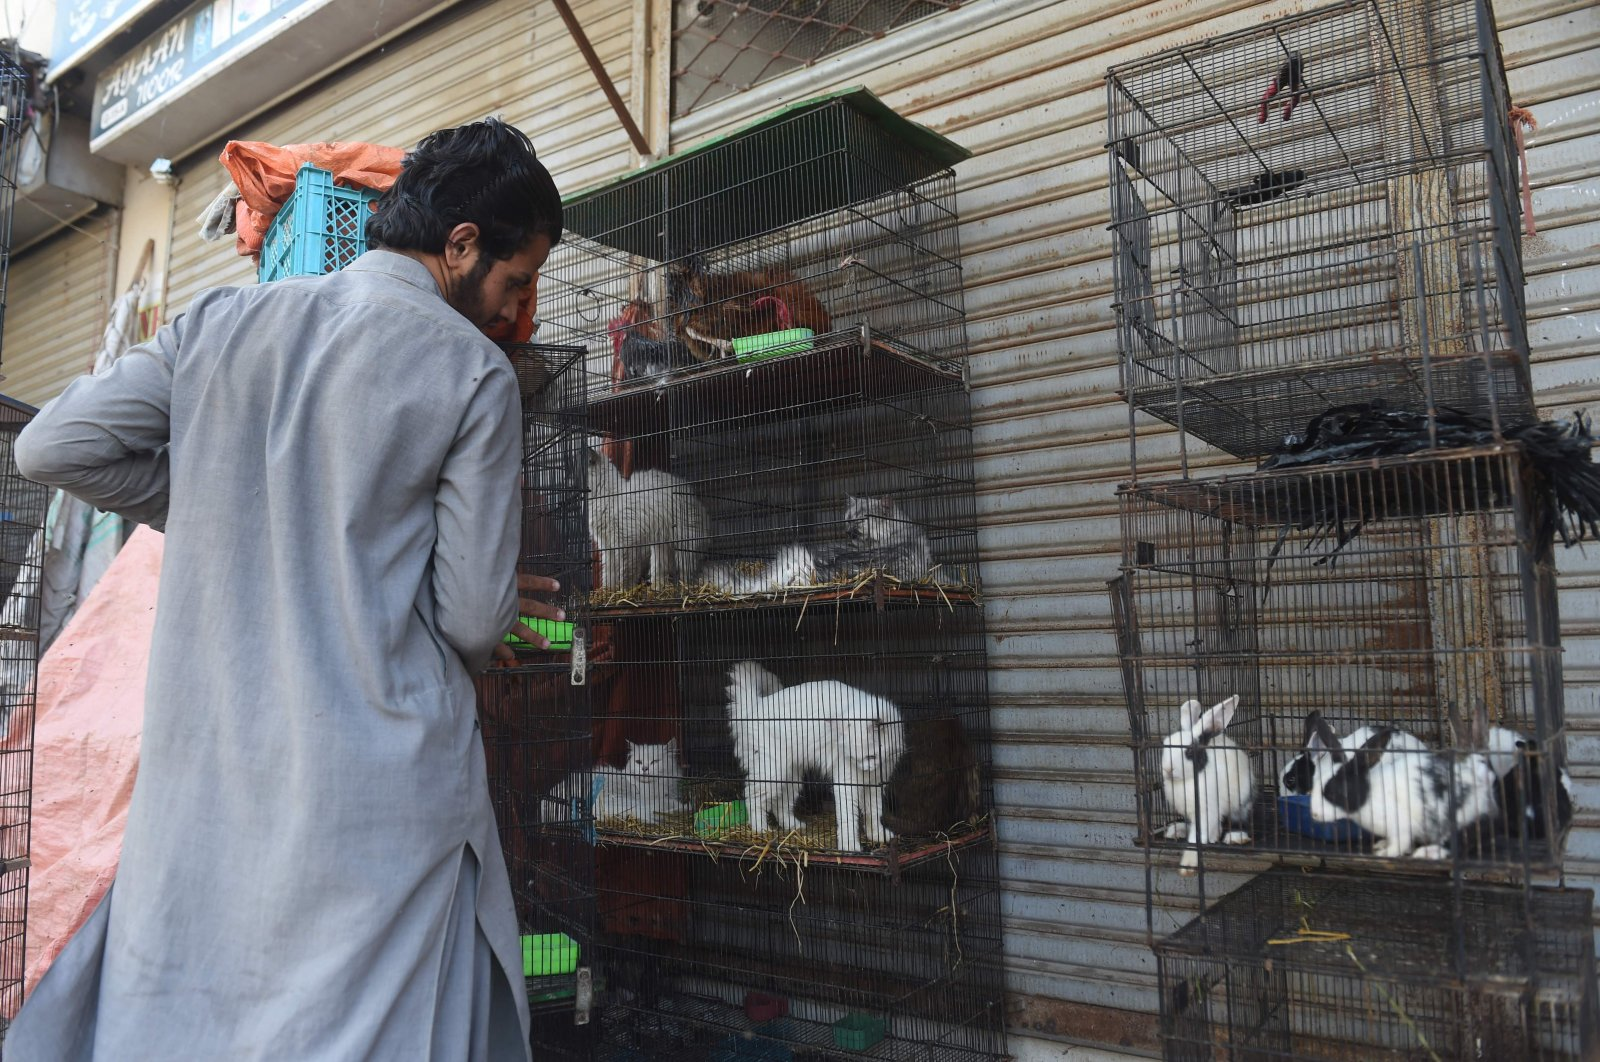 A vendor moves the cages of animals outside his closed shop during a government-imposed nationwide lockdown as a preventive measure against the coronavirus, Karachi, Pakistan, Wednesday, April 1, 2020. (AFP Photo)